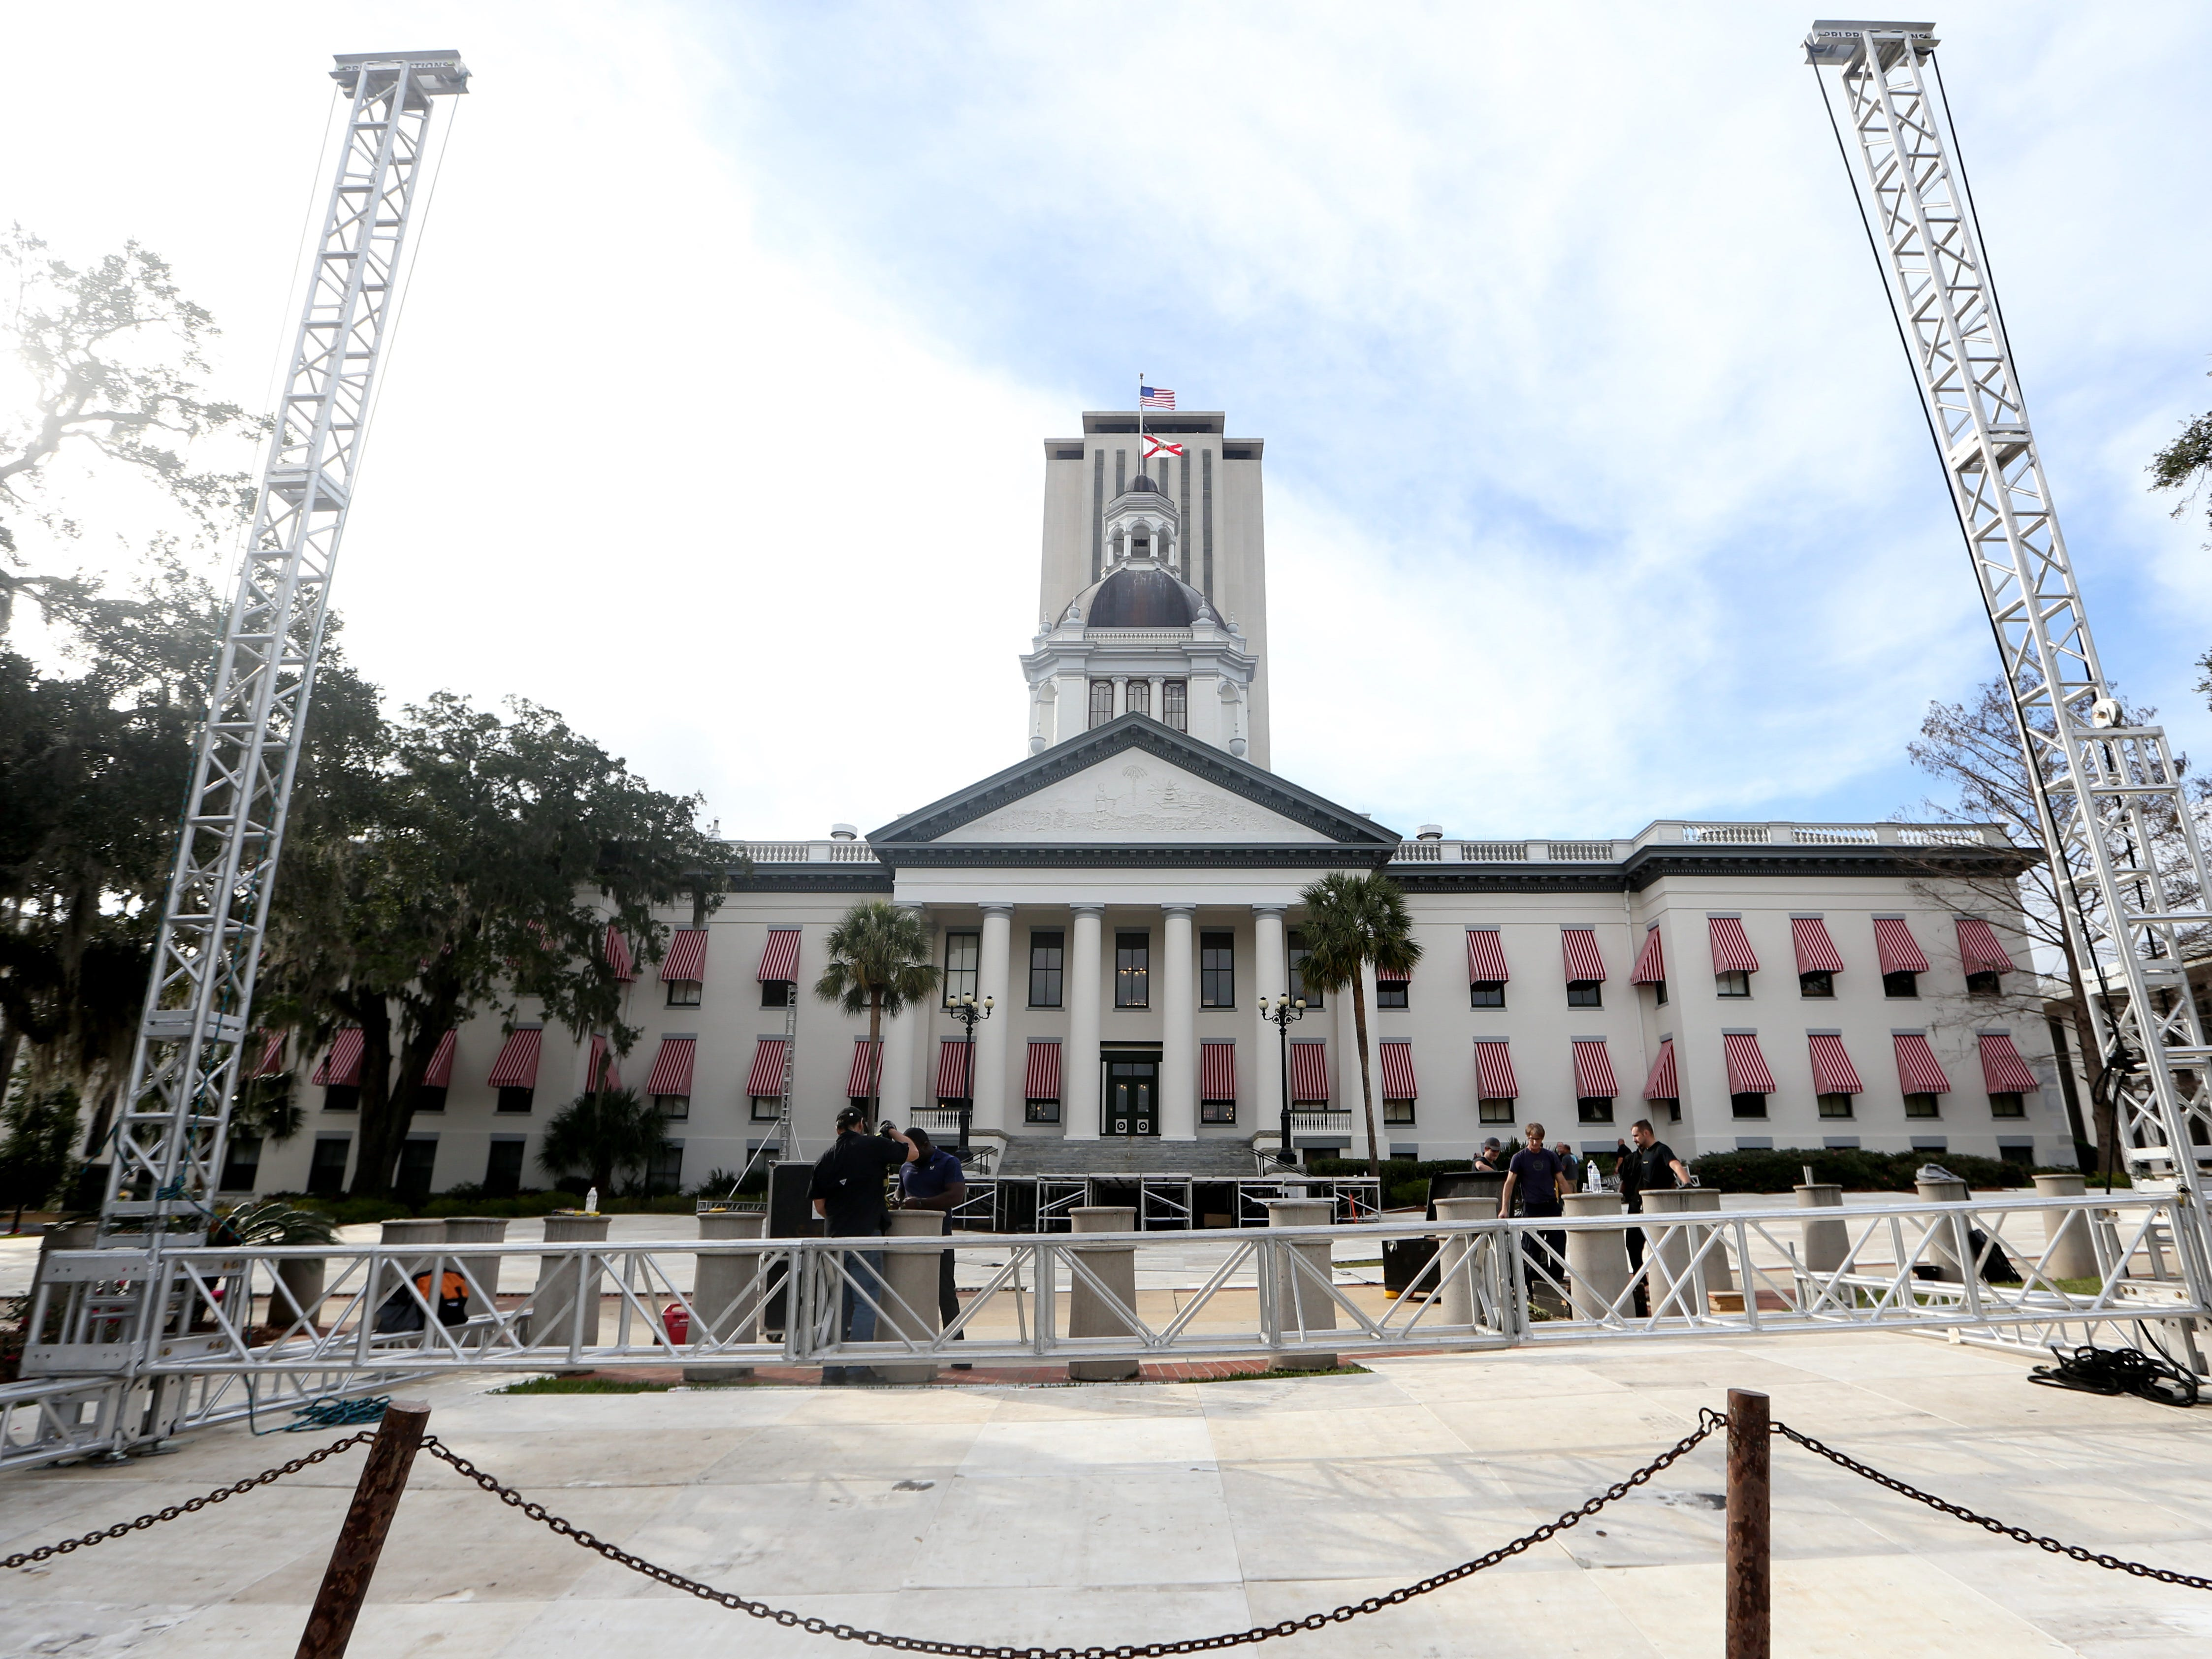 A crew of men setup a stage and video screen area outside the Florida's Historic Capitol, Thursday, Jan. 3, 2019. The setup is in preparation for the Swearing-In Ceremony which will take place on the morning of Tuesday, Jan 8, 2019.